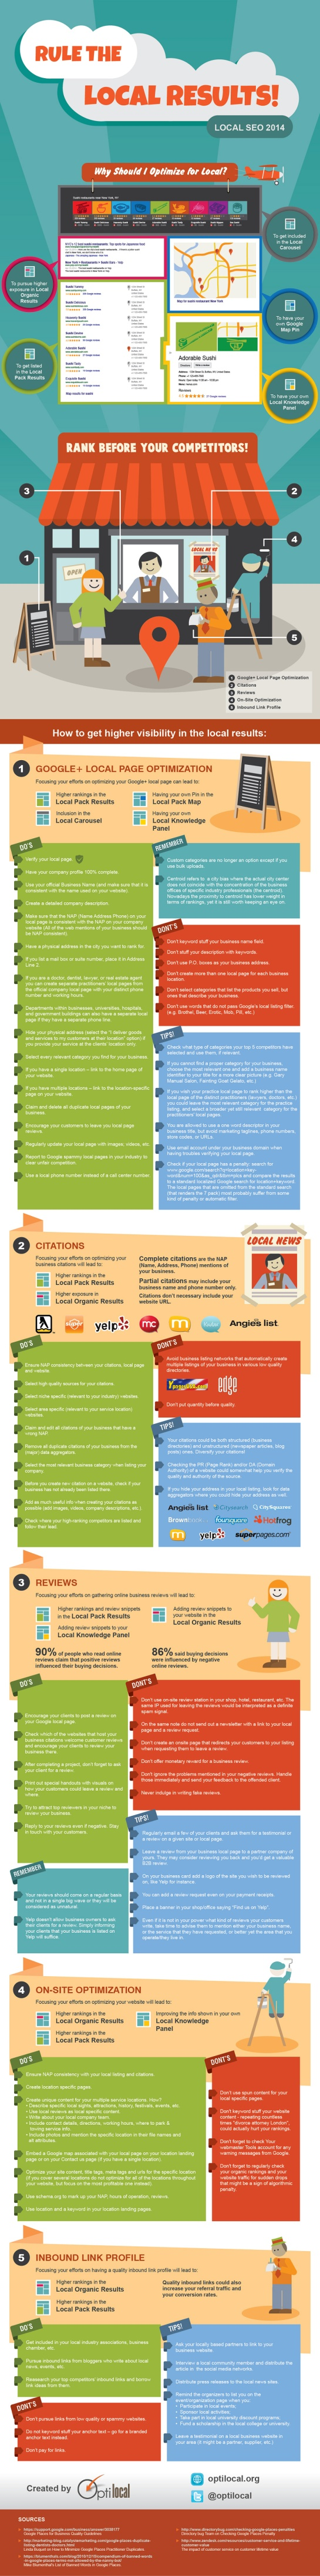 Google+ Local - SEO Local 2014 - AUTOVEILLE